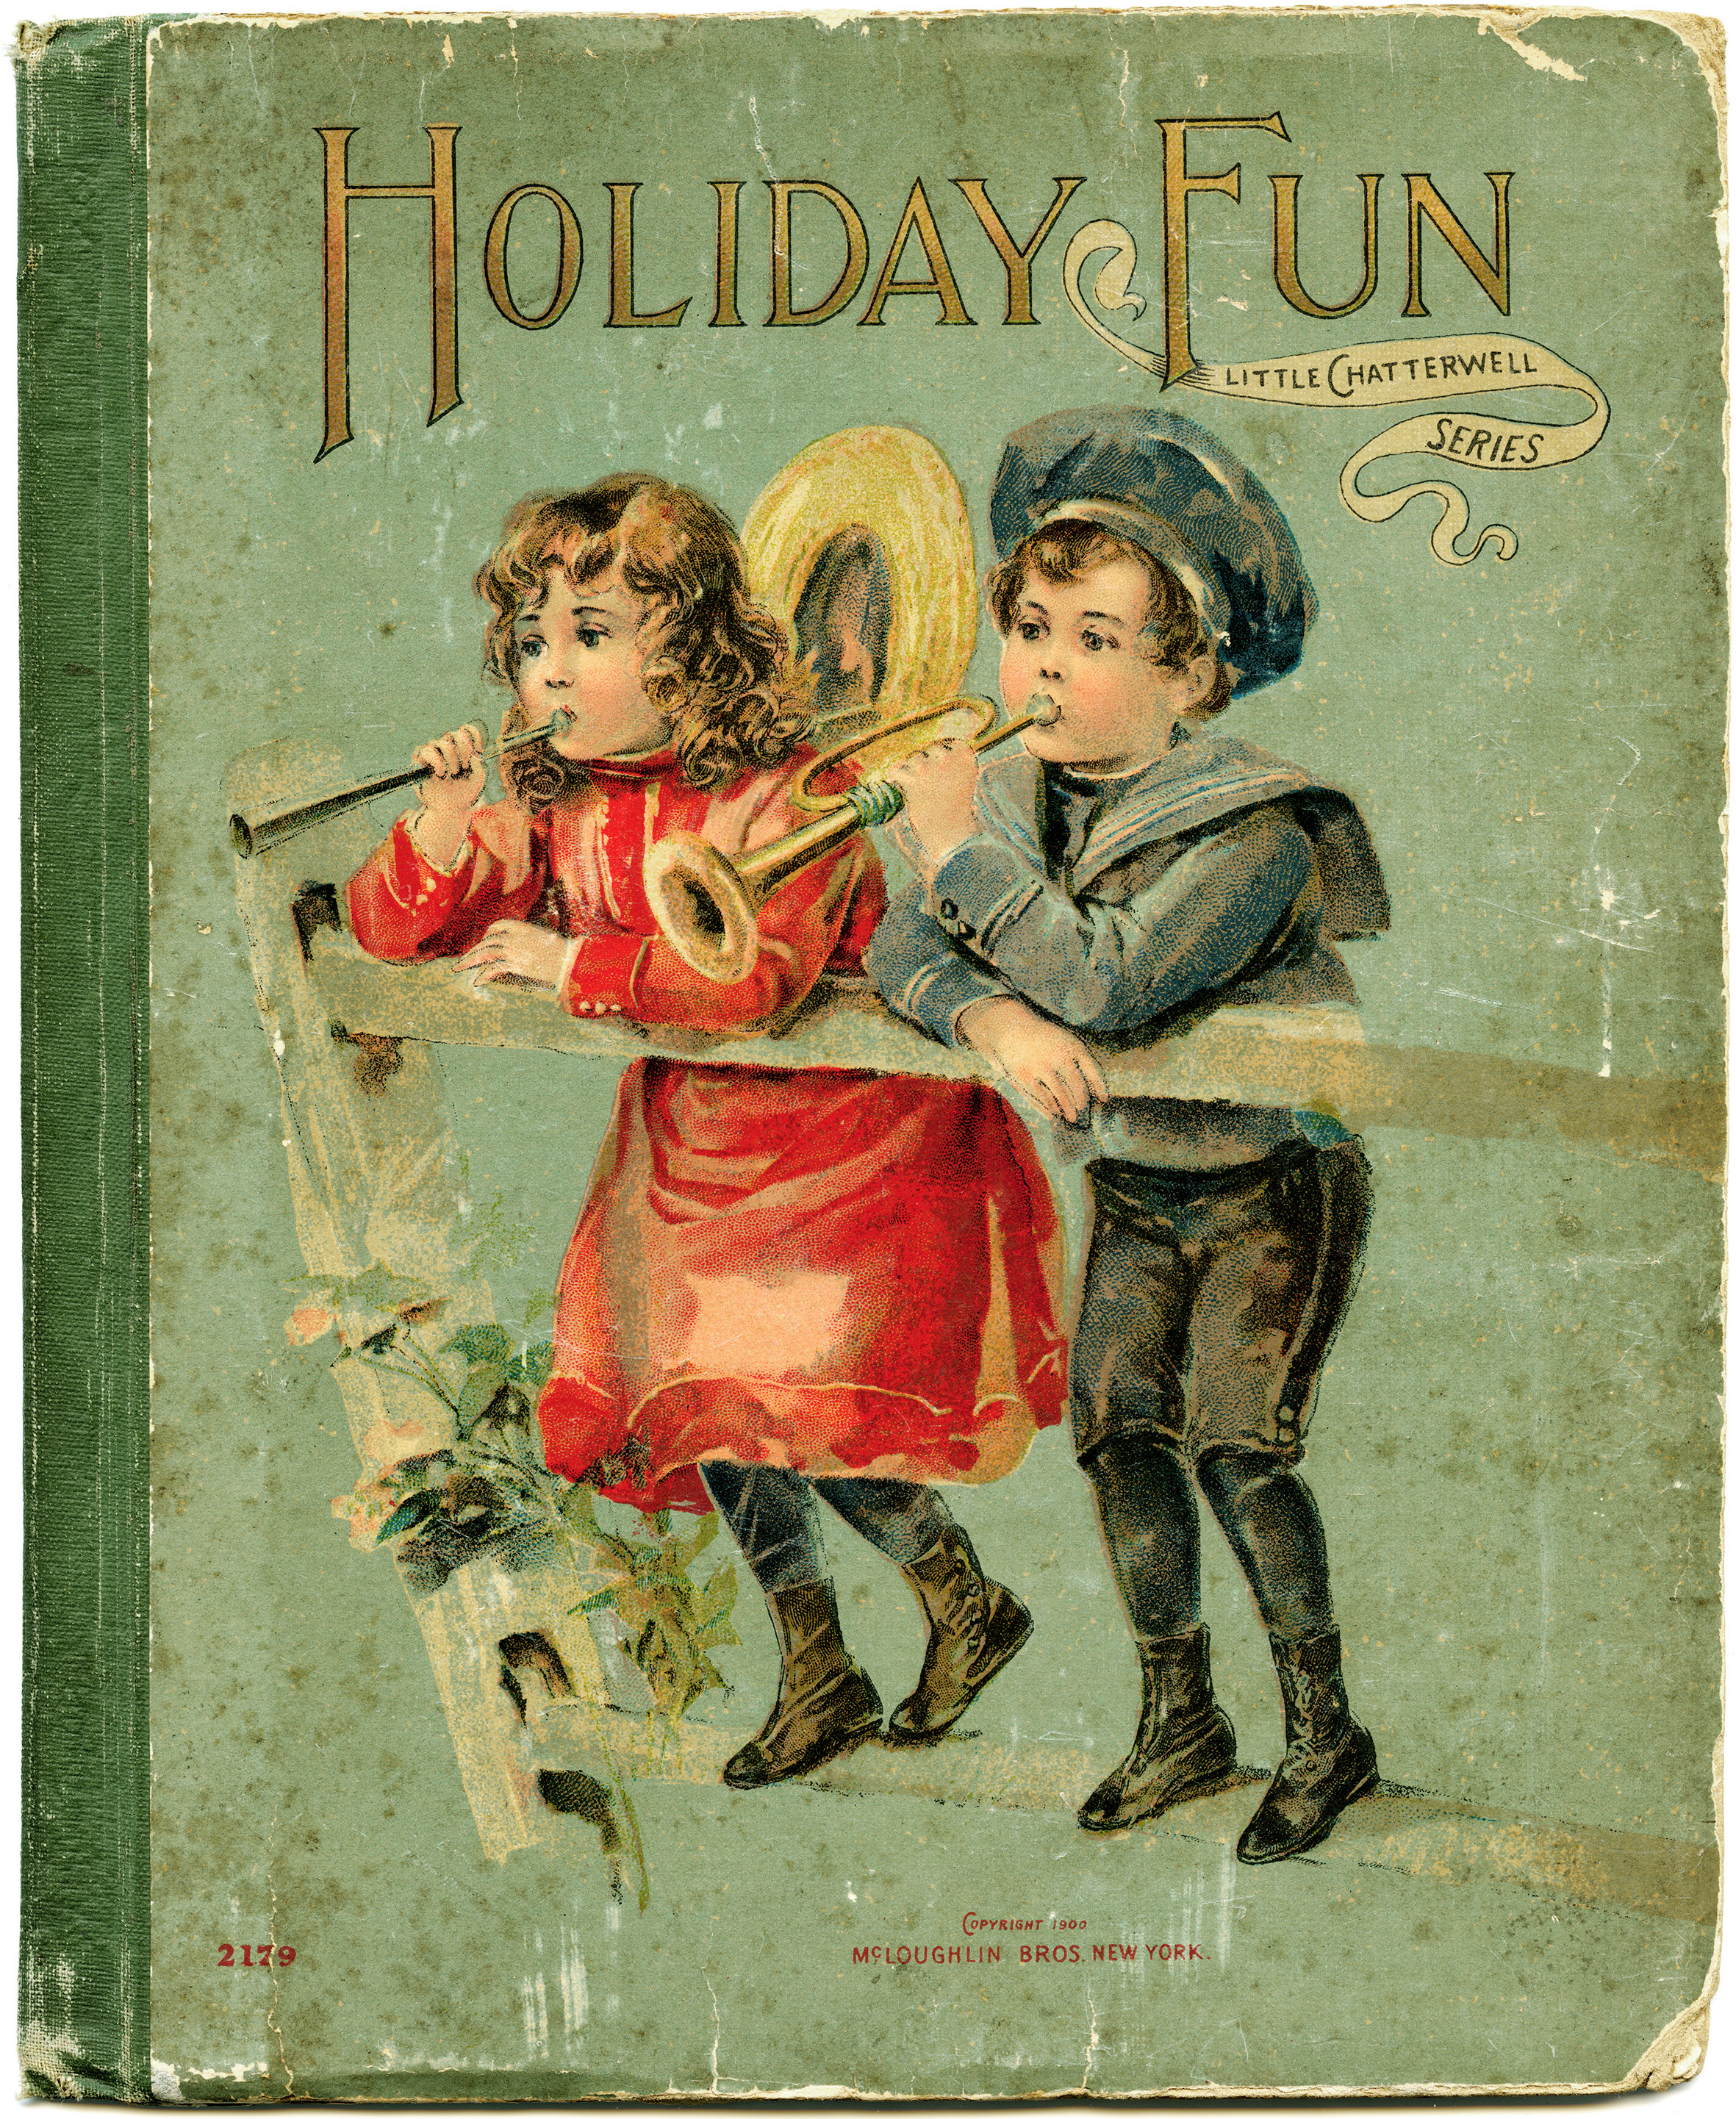 Vintage Children S Book Cover Art ~ Holiday fun cover oage old design shop